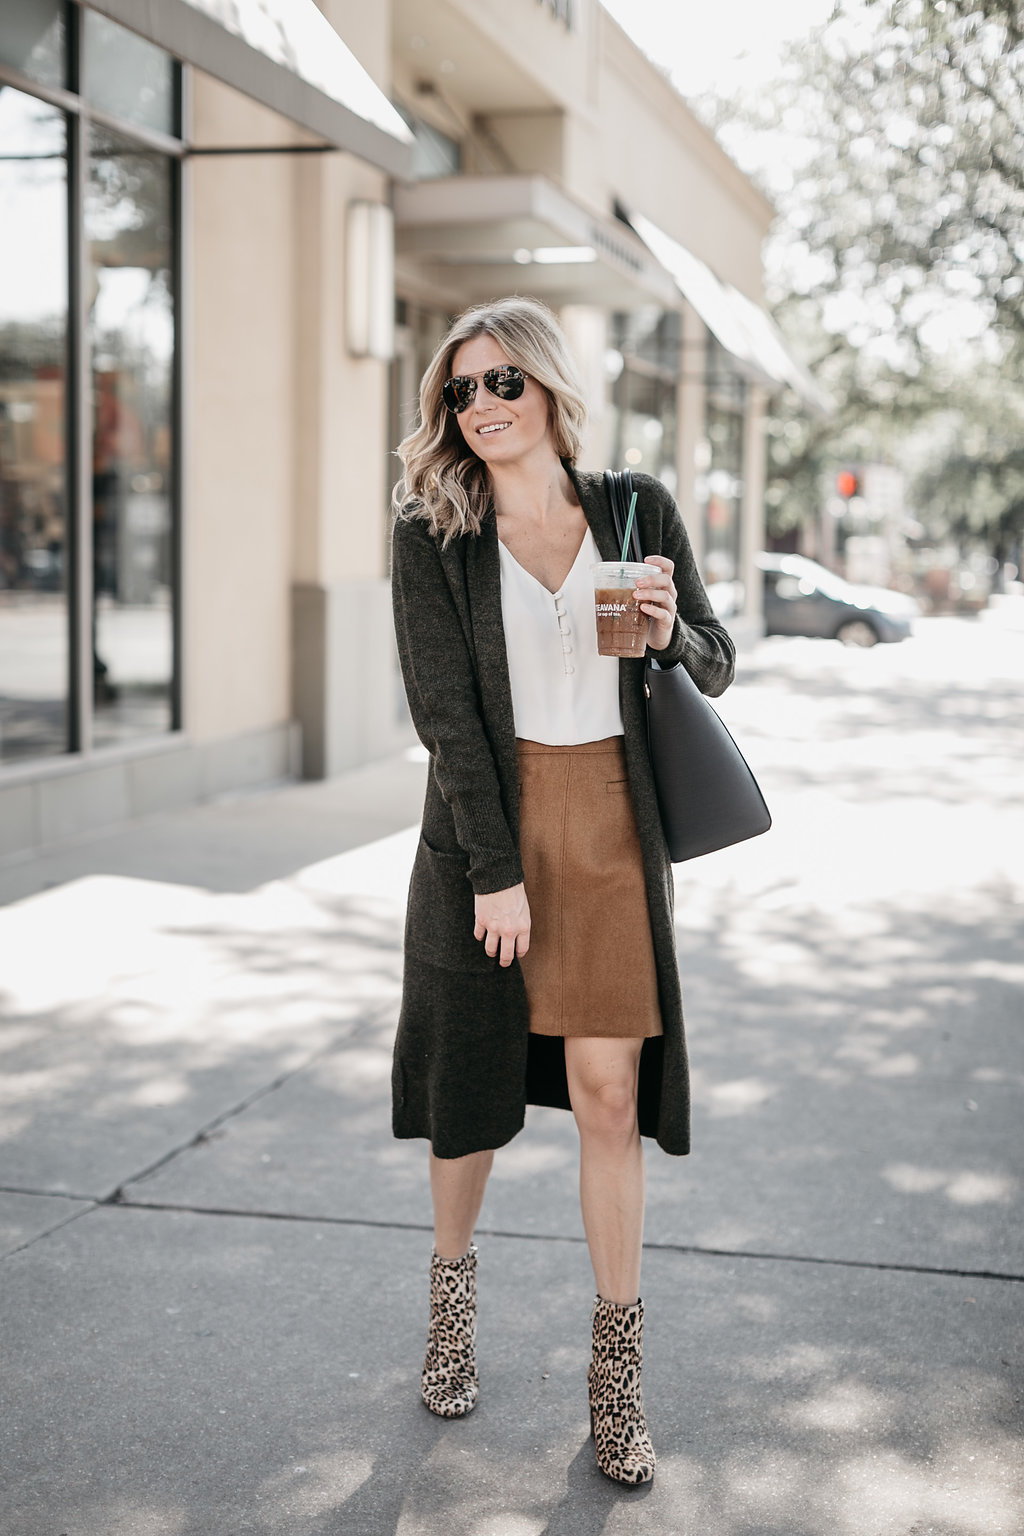 How To Style Leopard Booties For Work